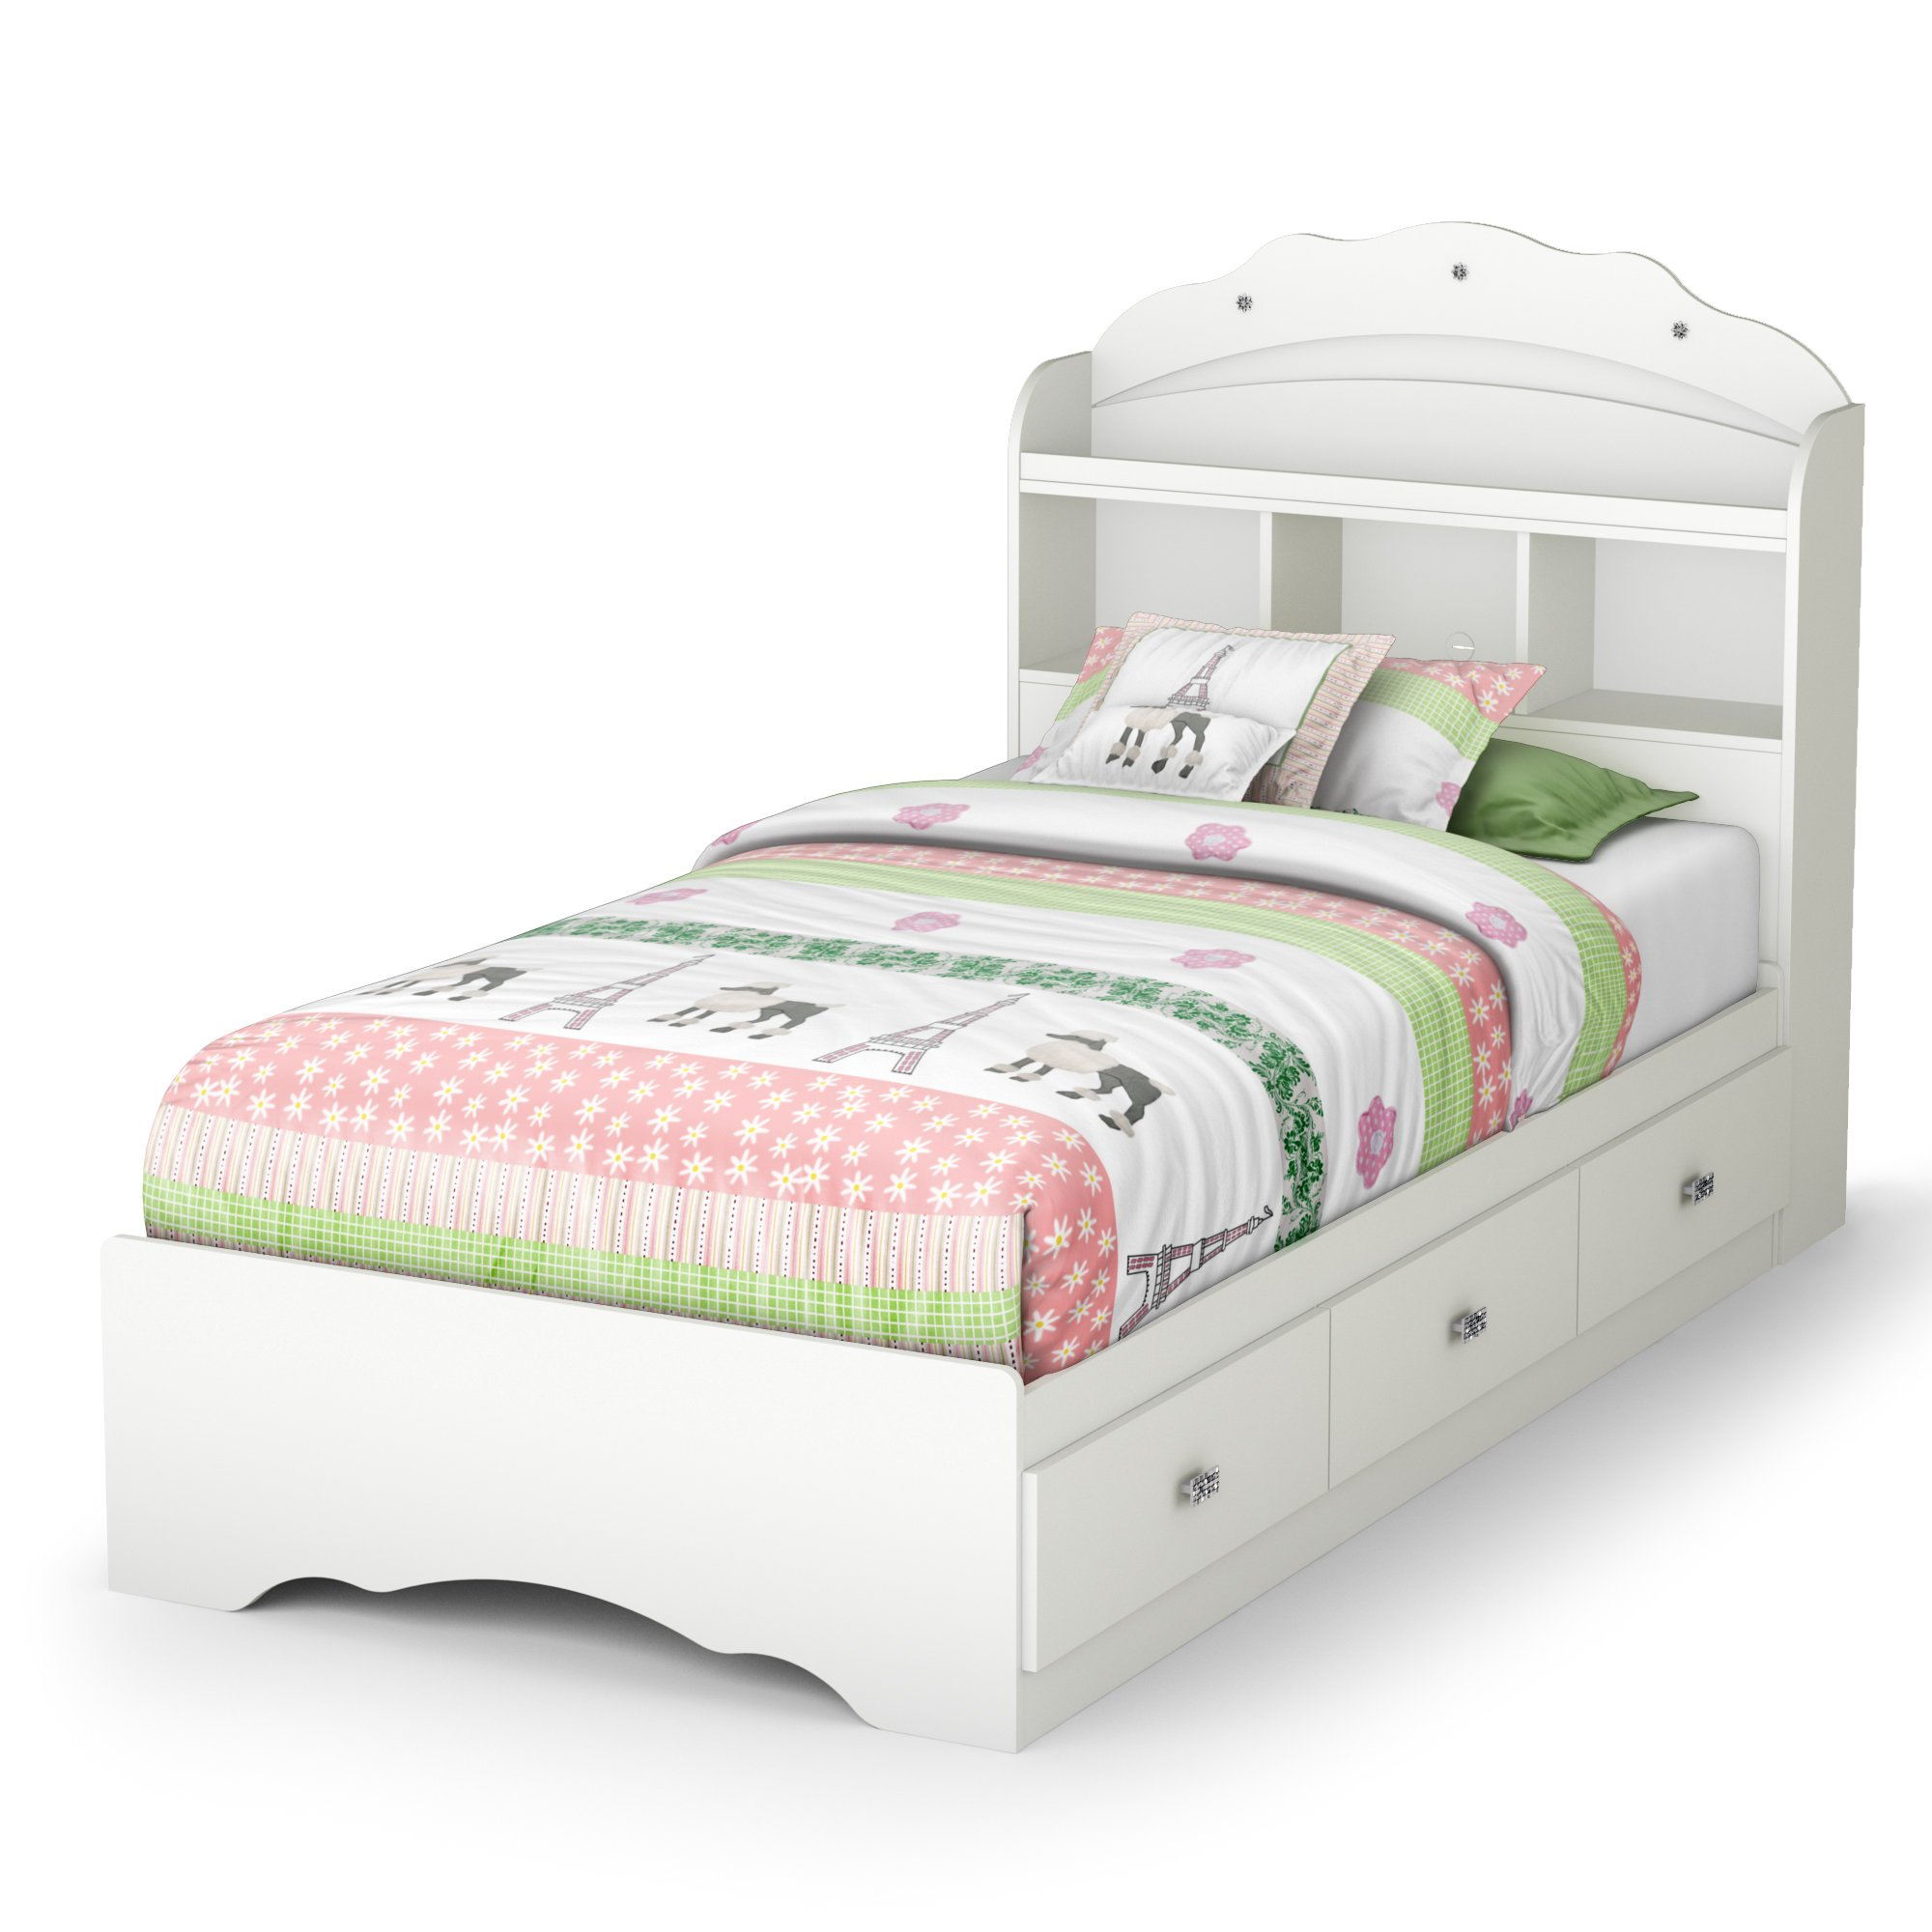 South Shore 39 in. Twin Mates Bed with Bookcase Headboard in Pure White by South Shore